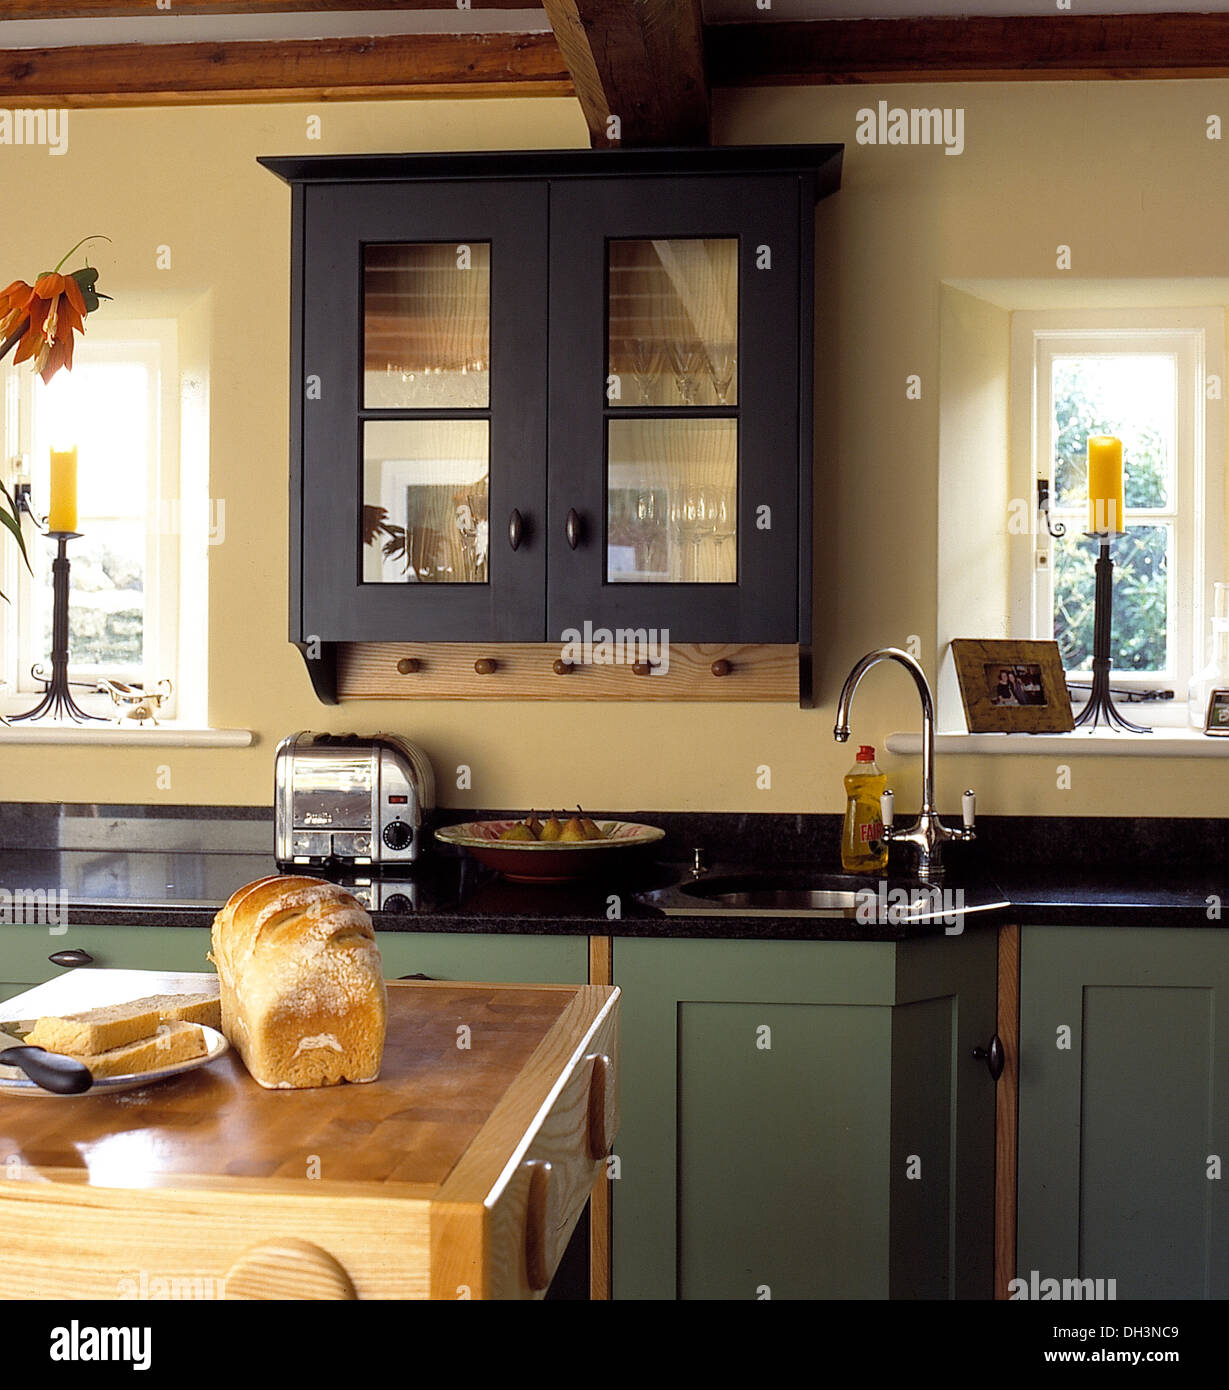 Kitchen Worktop Granite Glass Fronted Wall Cupboard Above Dualit Toaster On Black Granite